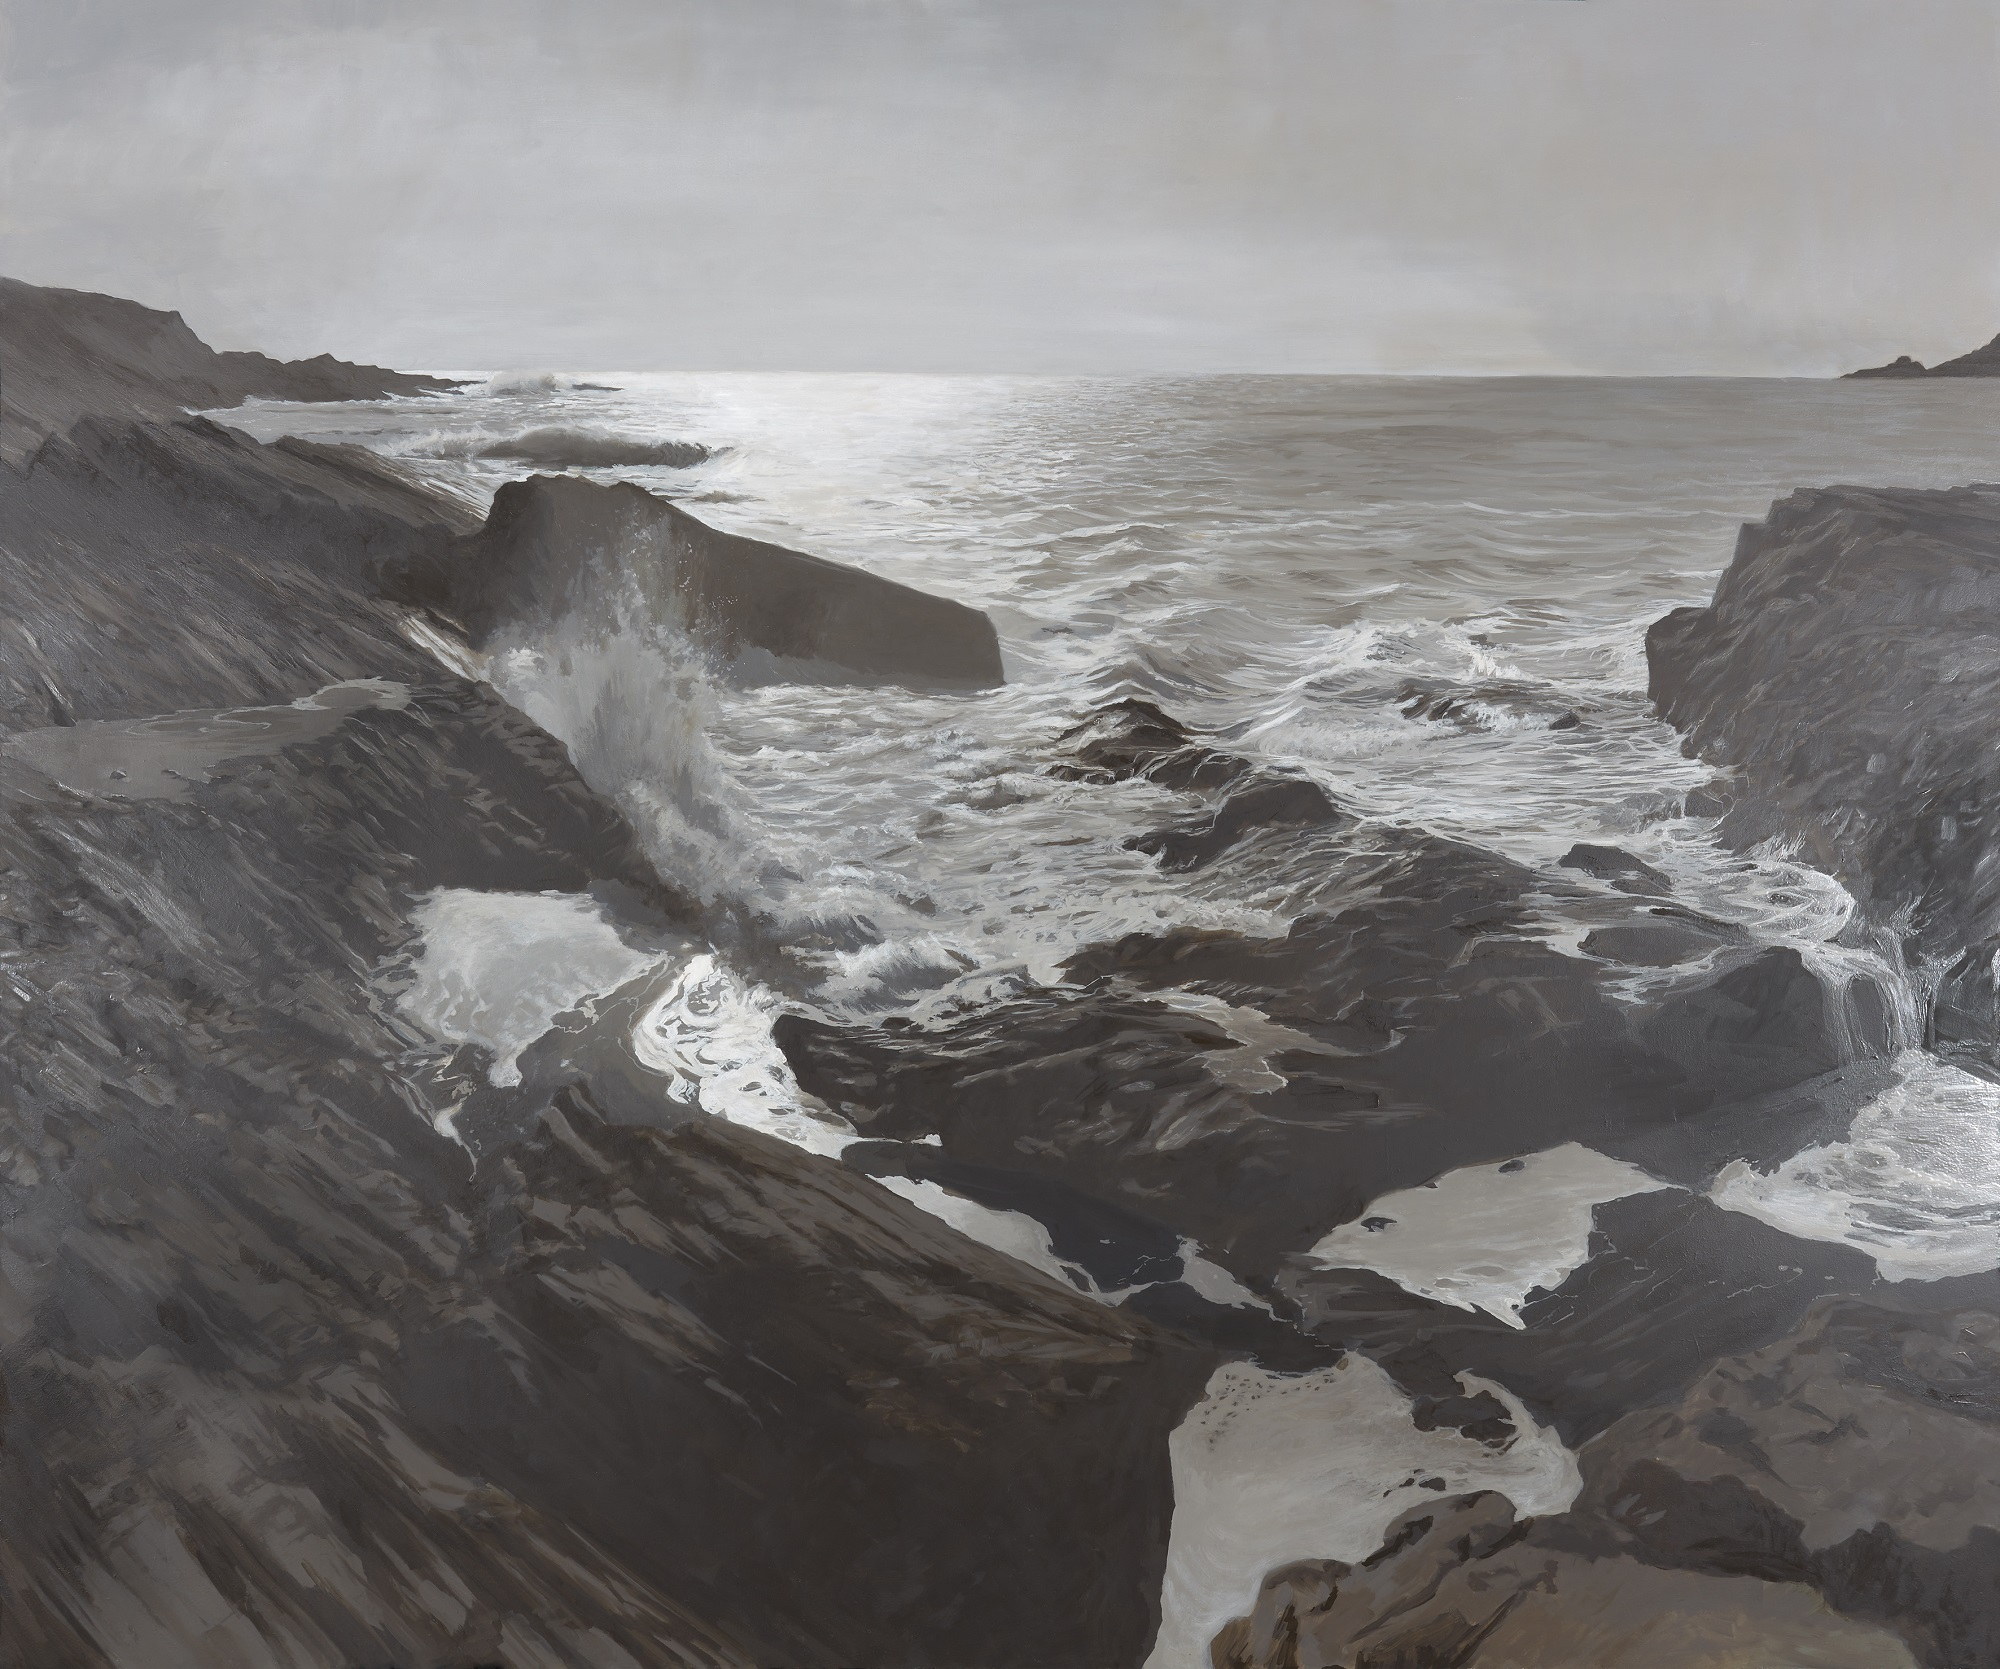 <br><em>Salcombe Estuary Mouth</em>, 2019<br>Greg Ramsden<br>Oil on board, 120 x 153 cm